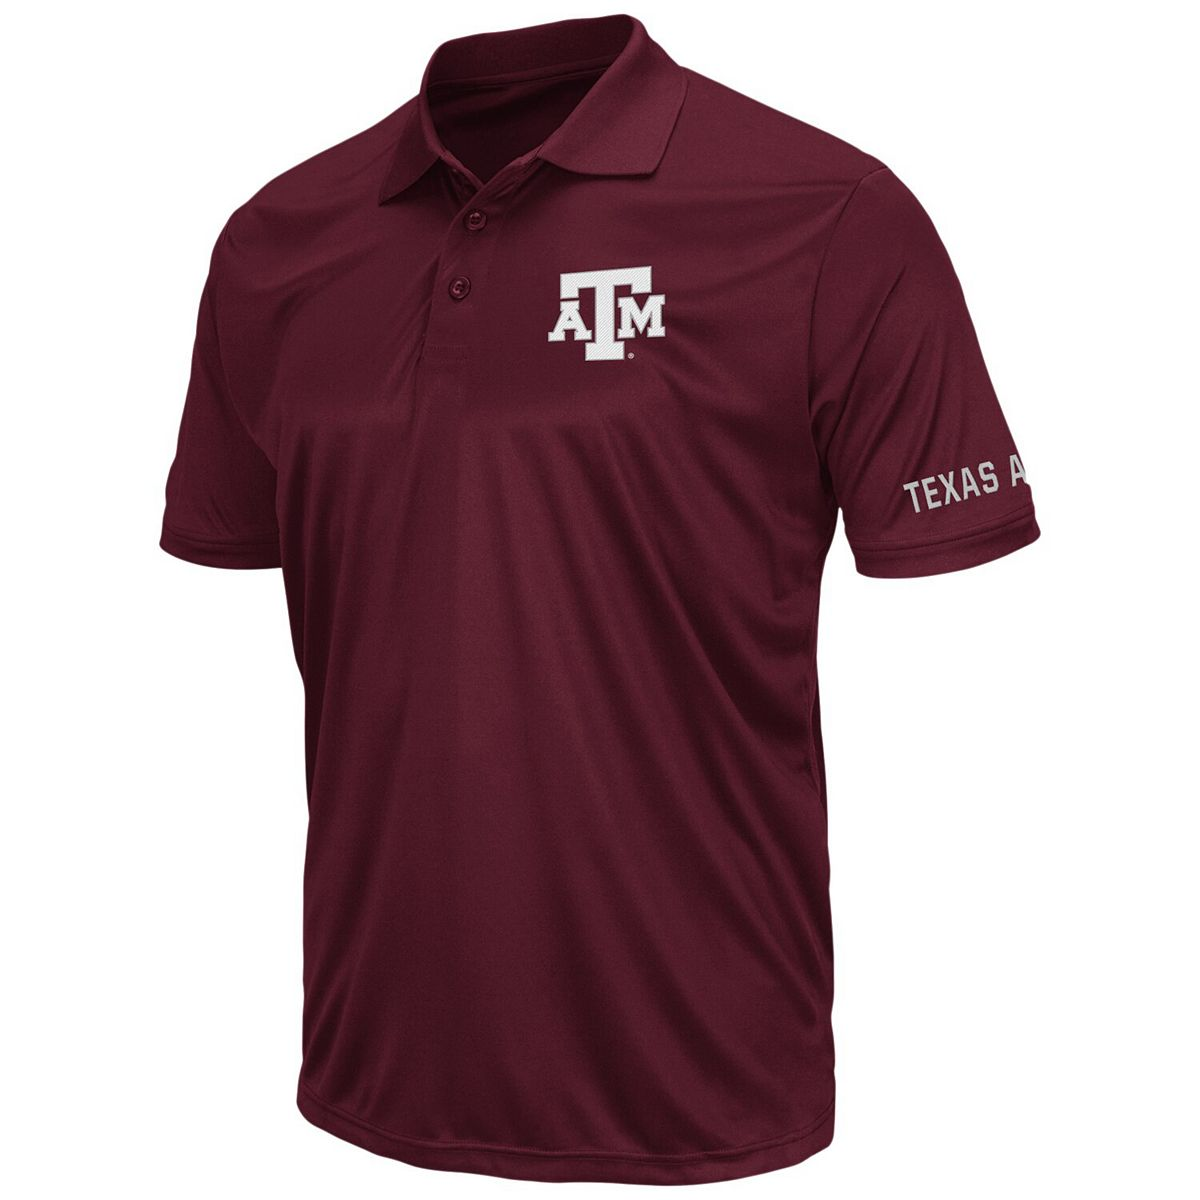 Men's Colosseum Maroon Texas A&M Aggies Big And Tall Stance Polo SbaHJ